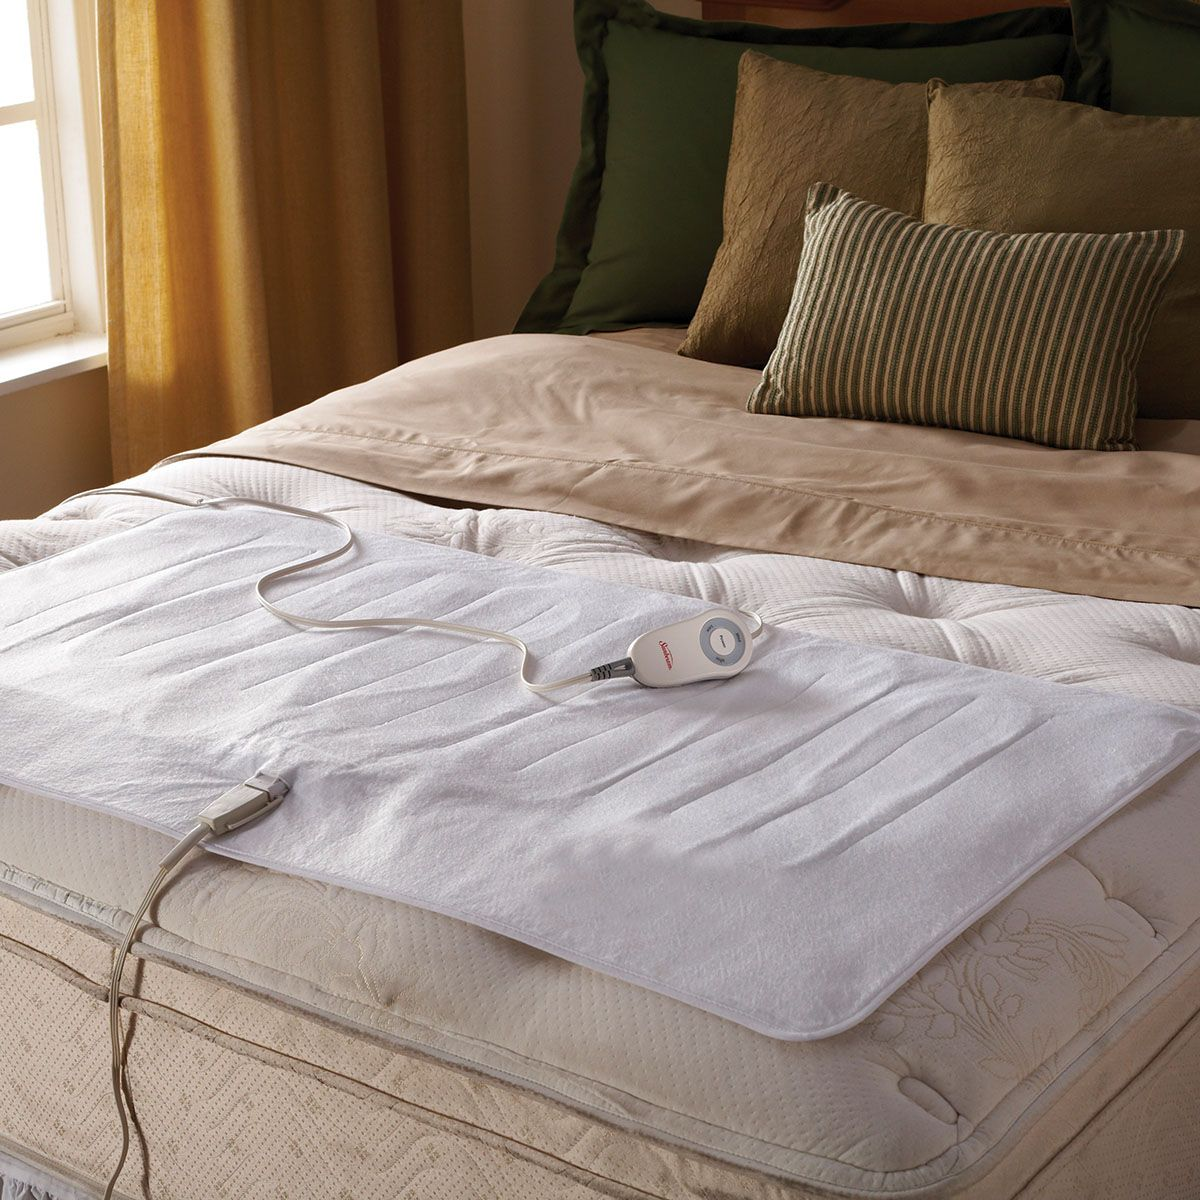 shop for the sunbeama comfy toes queen king heated mattress pad at